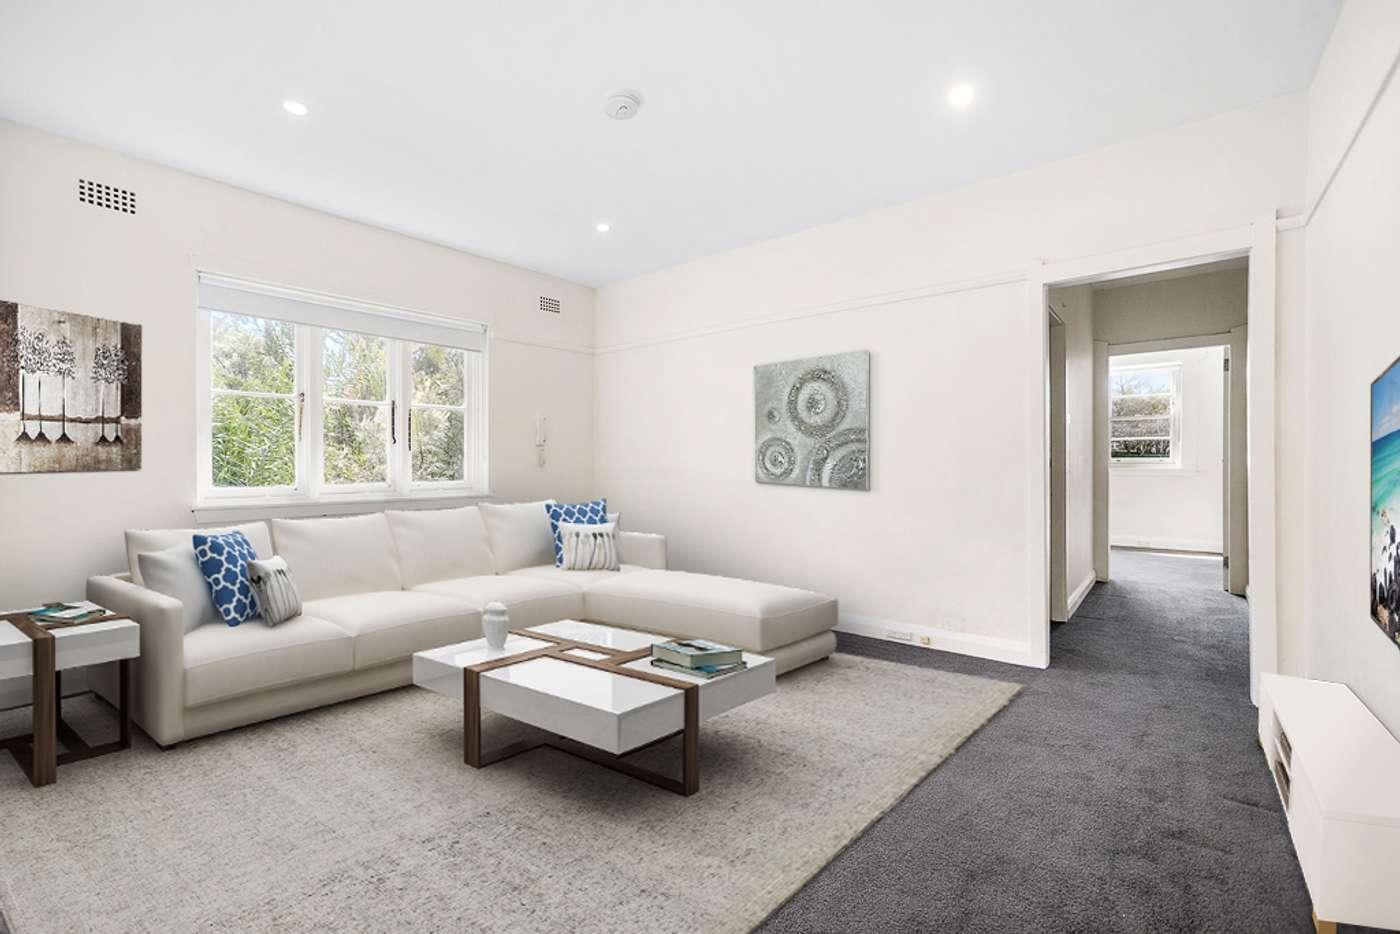 Main view of Homely apartment listing, 4/20 Glebe Street, Clovelly NSW 2031